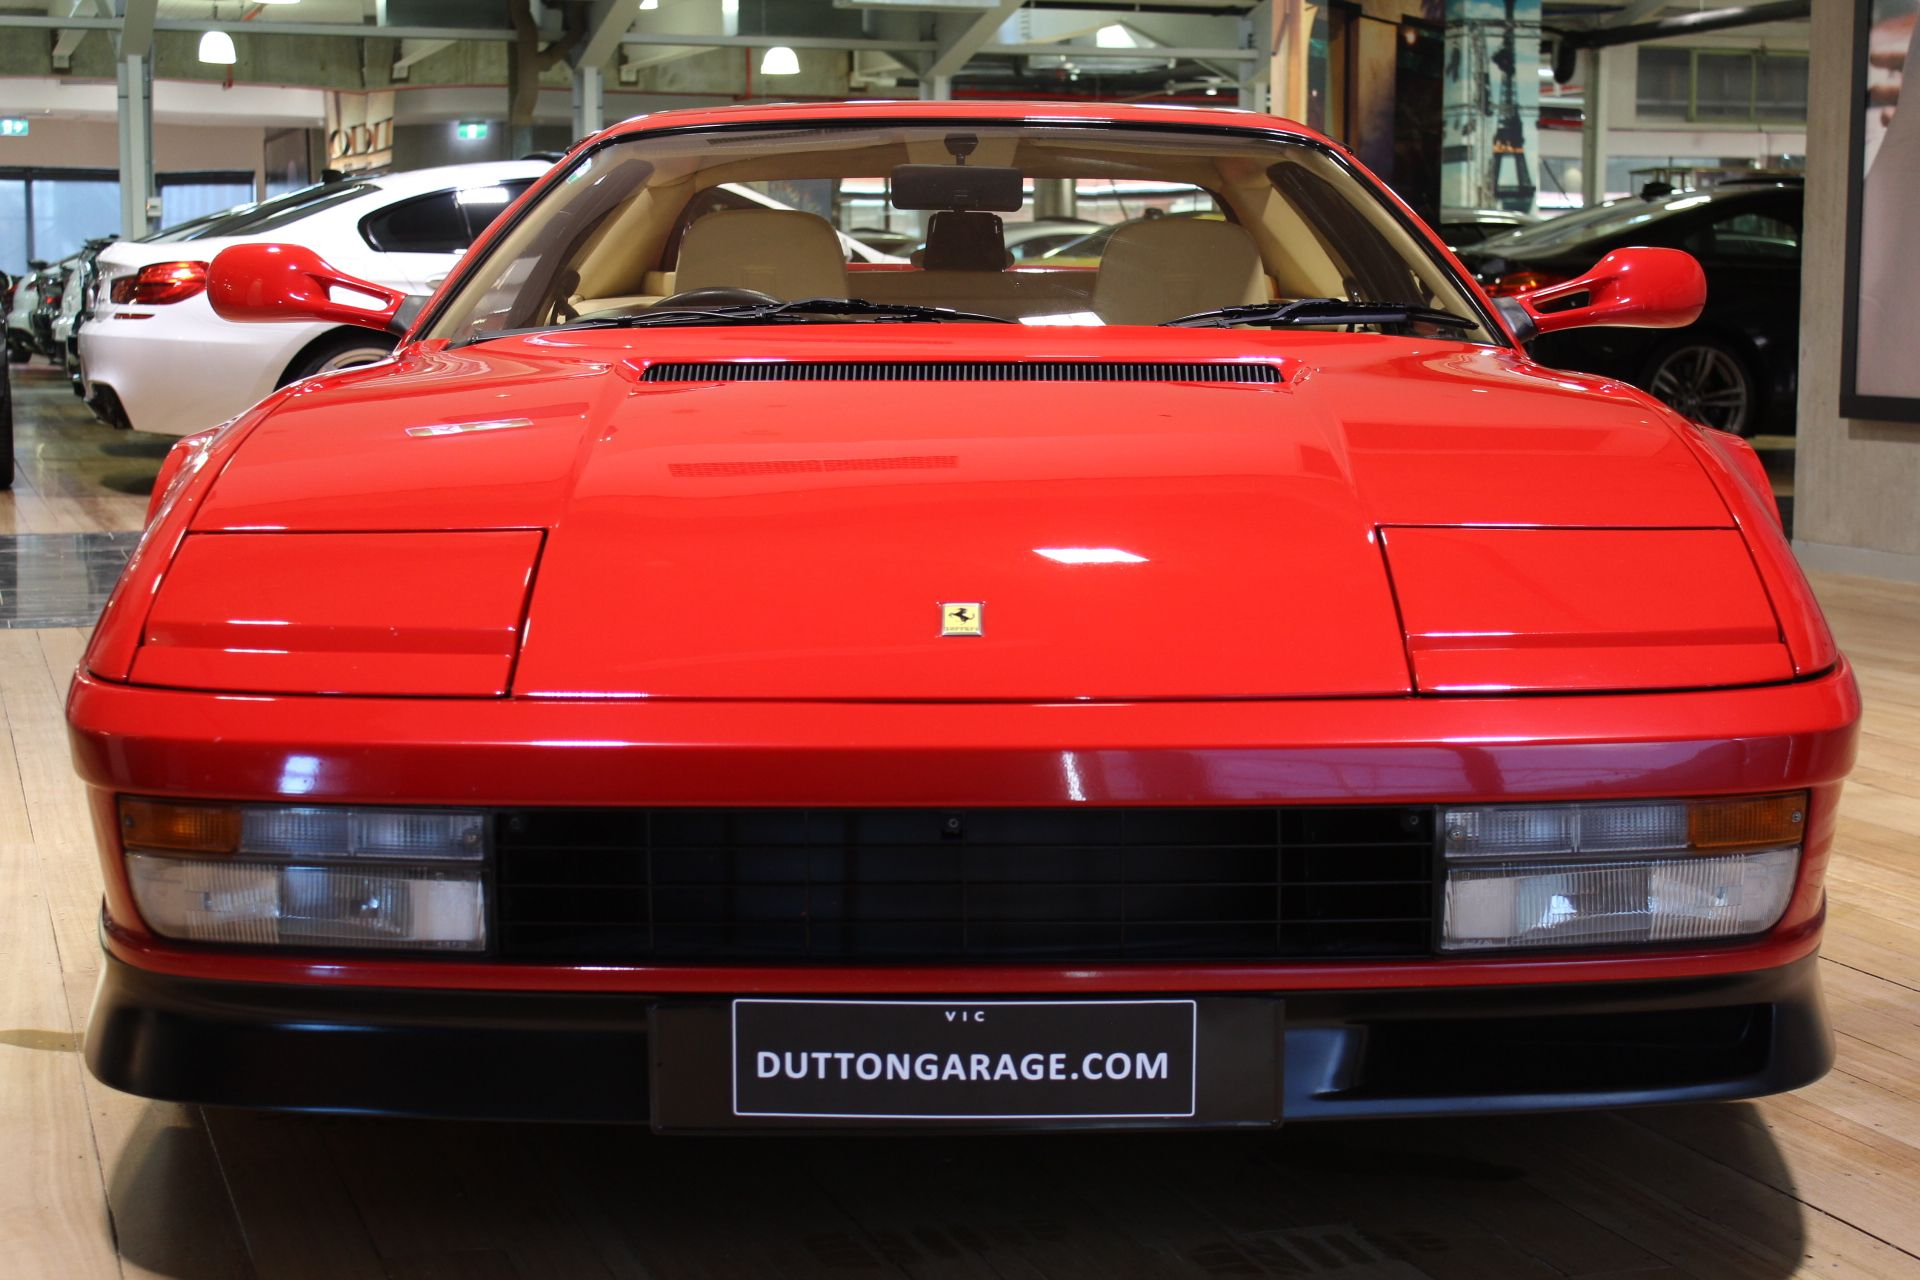 in savings you needs how for who ferrari testarossa armands articles armand college old are could when andrew golseth account invest a sale